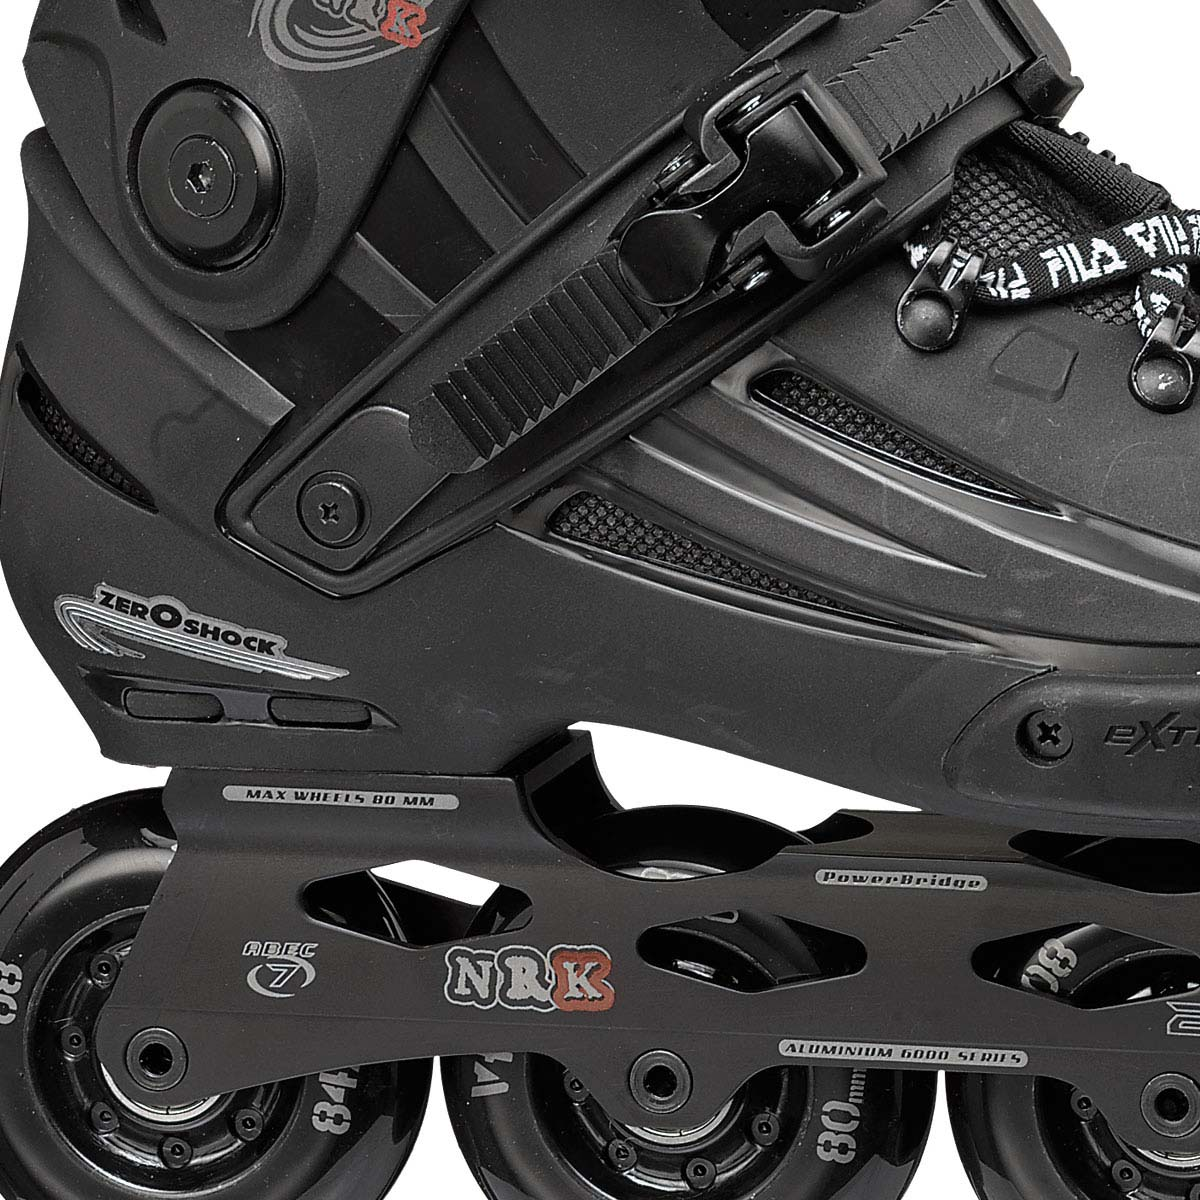 Patins NRK JP Black 80mm/84A ABEC 7